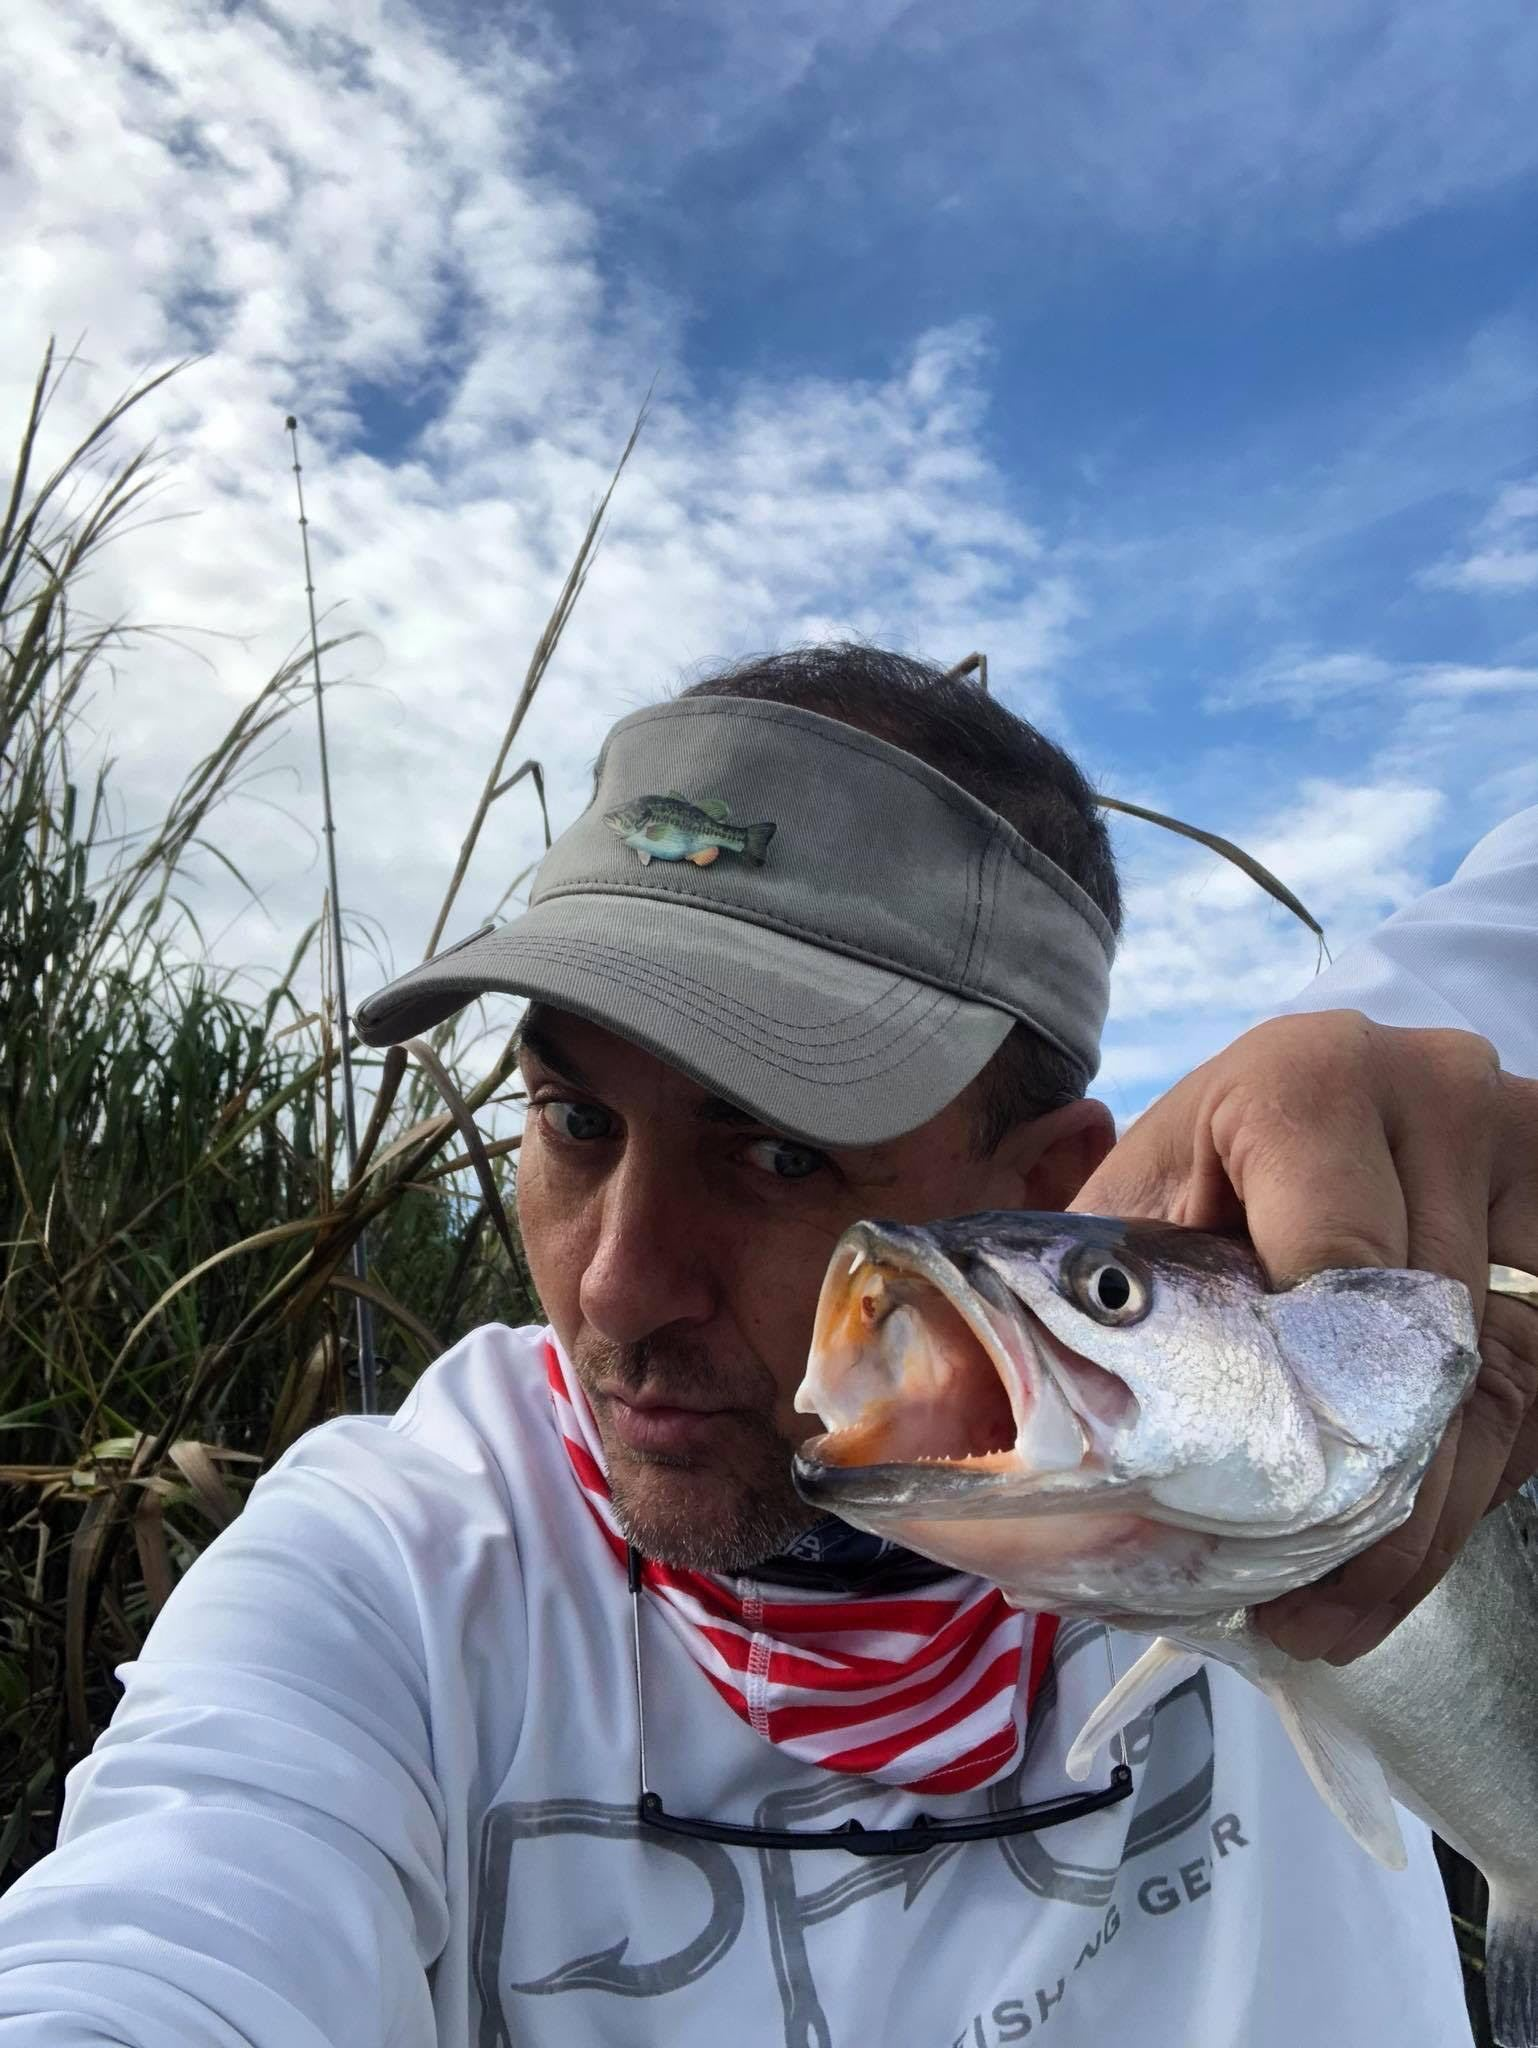 Chris Newburn Takes Selfie With a Fish - TLO Outdoors